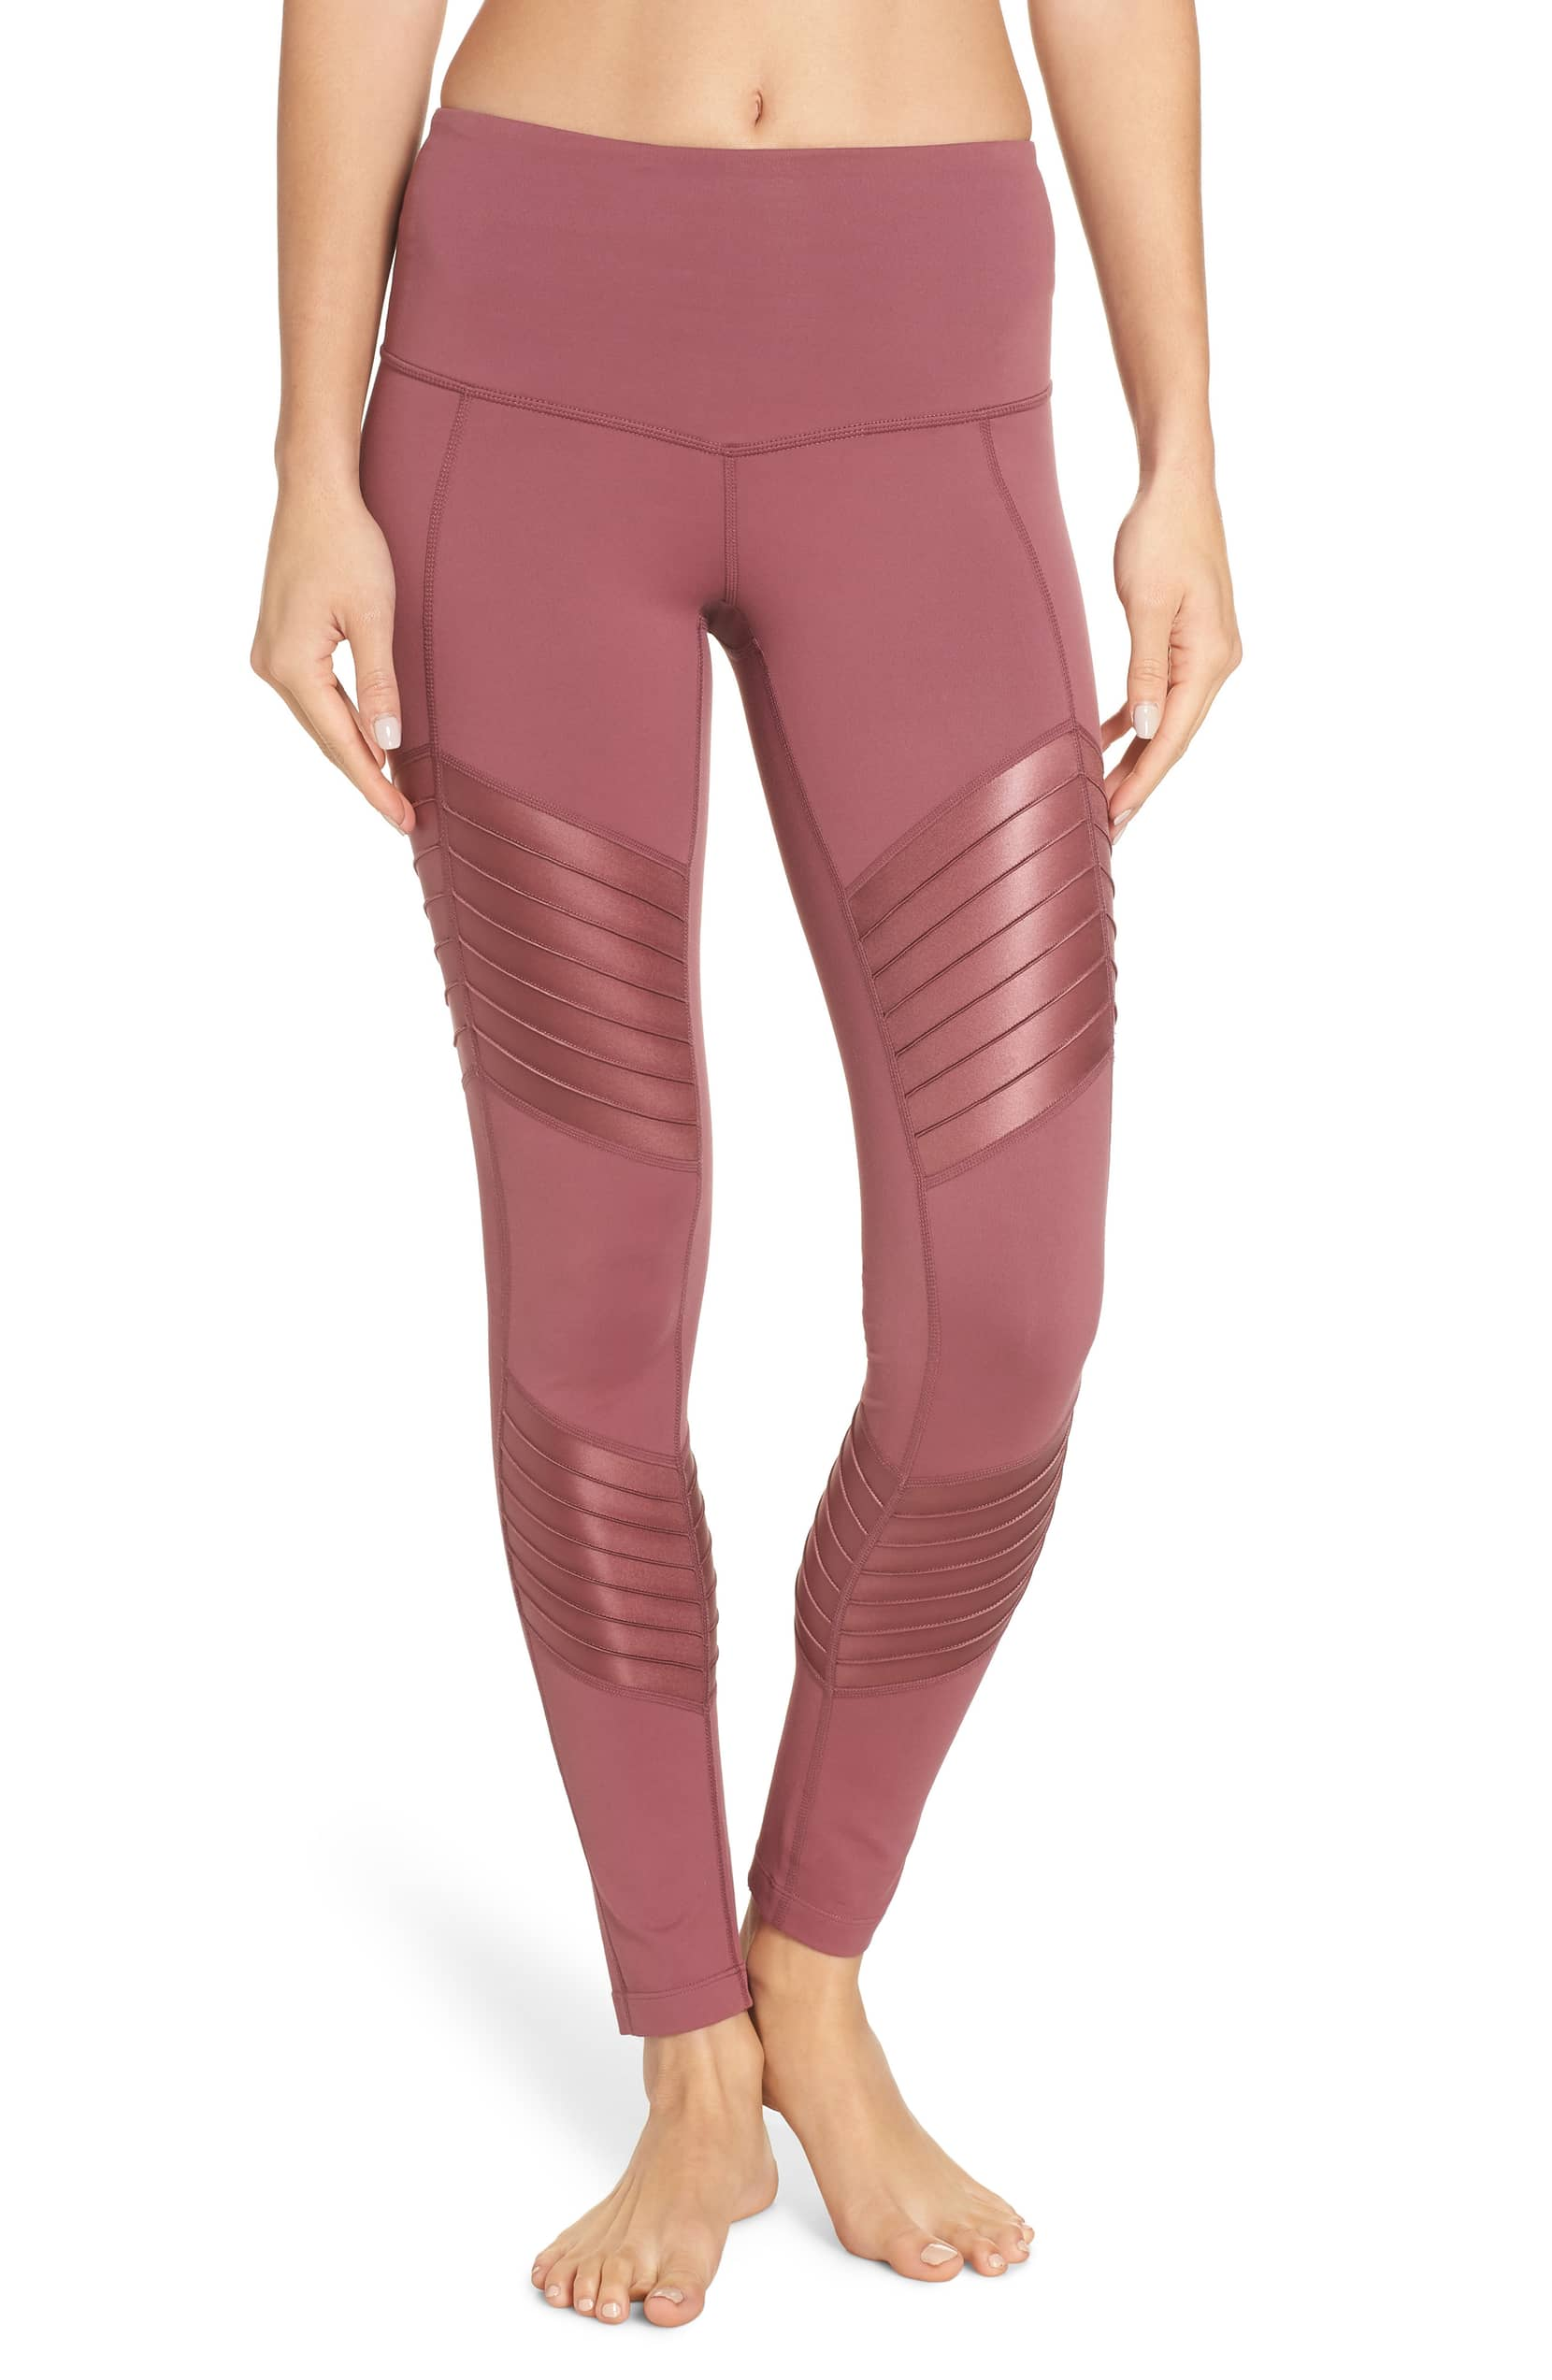 pink moto style leggings from the Zella brand at Nordstrom